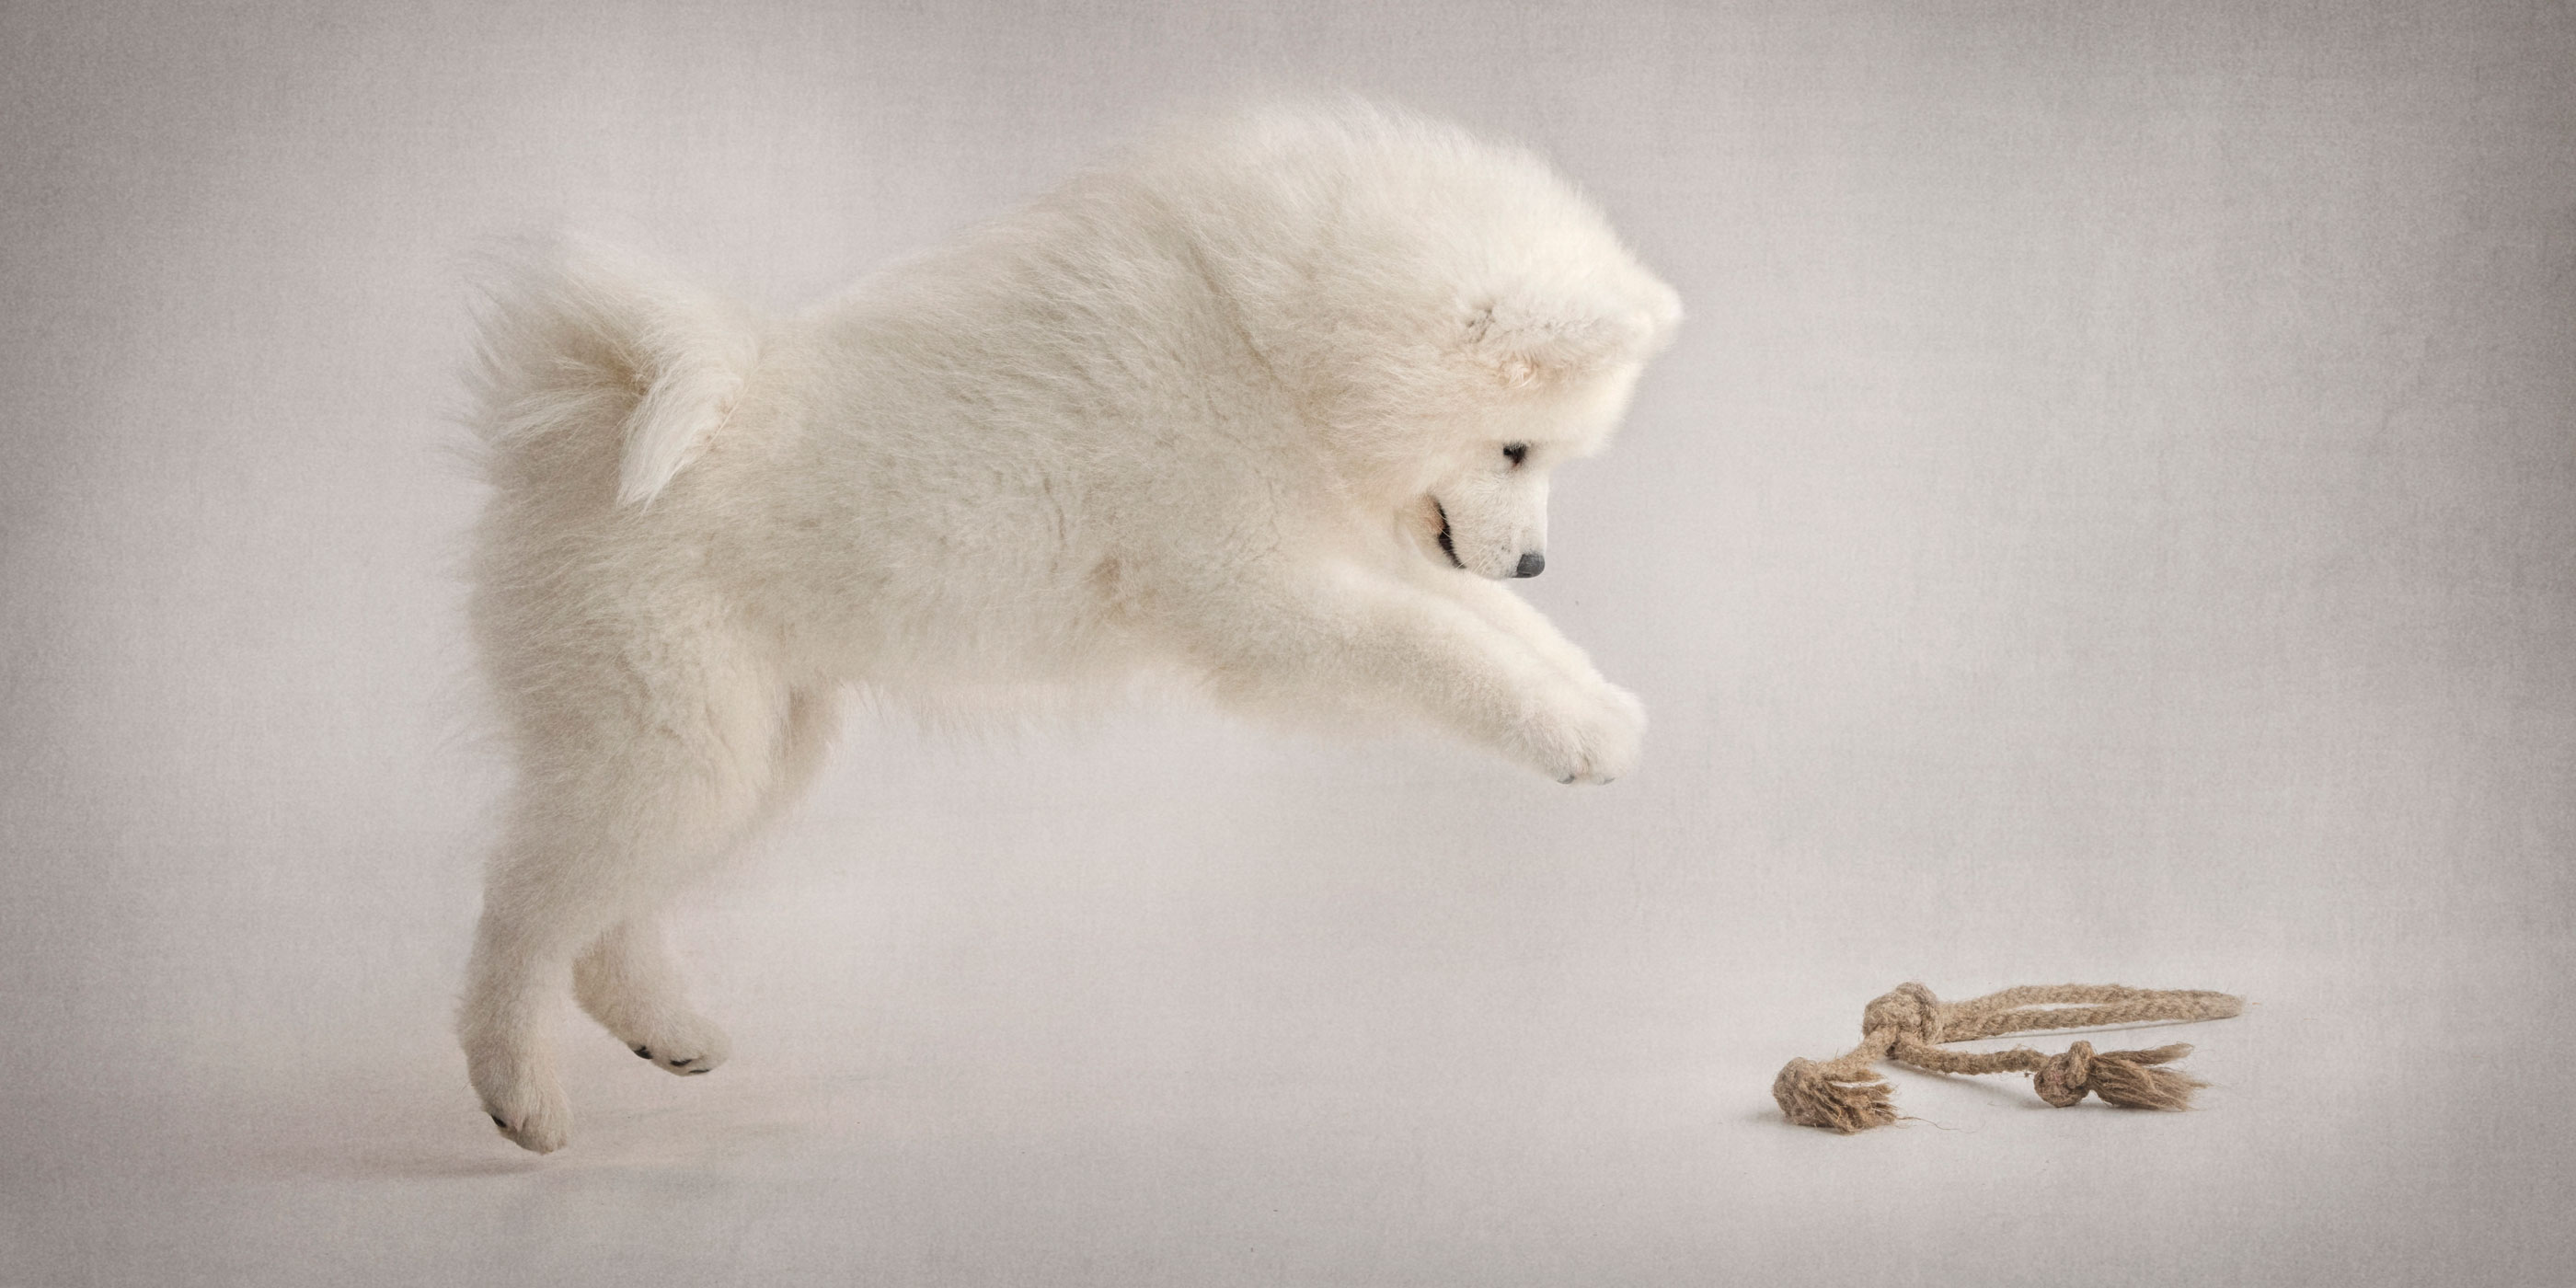 leaping for a toy white samoyed puppy